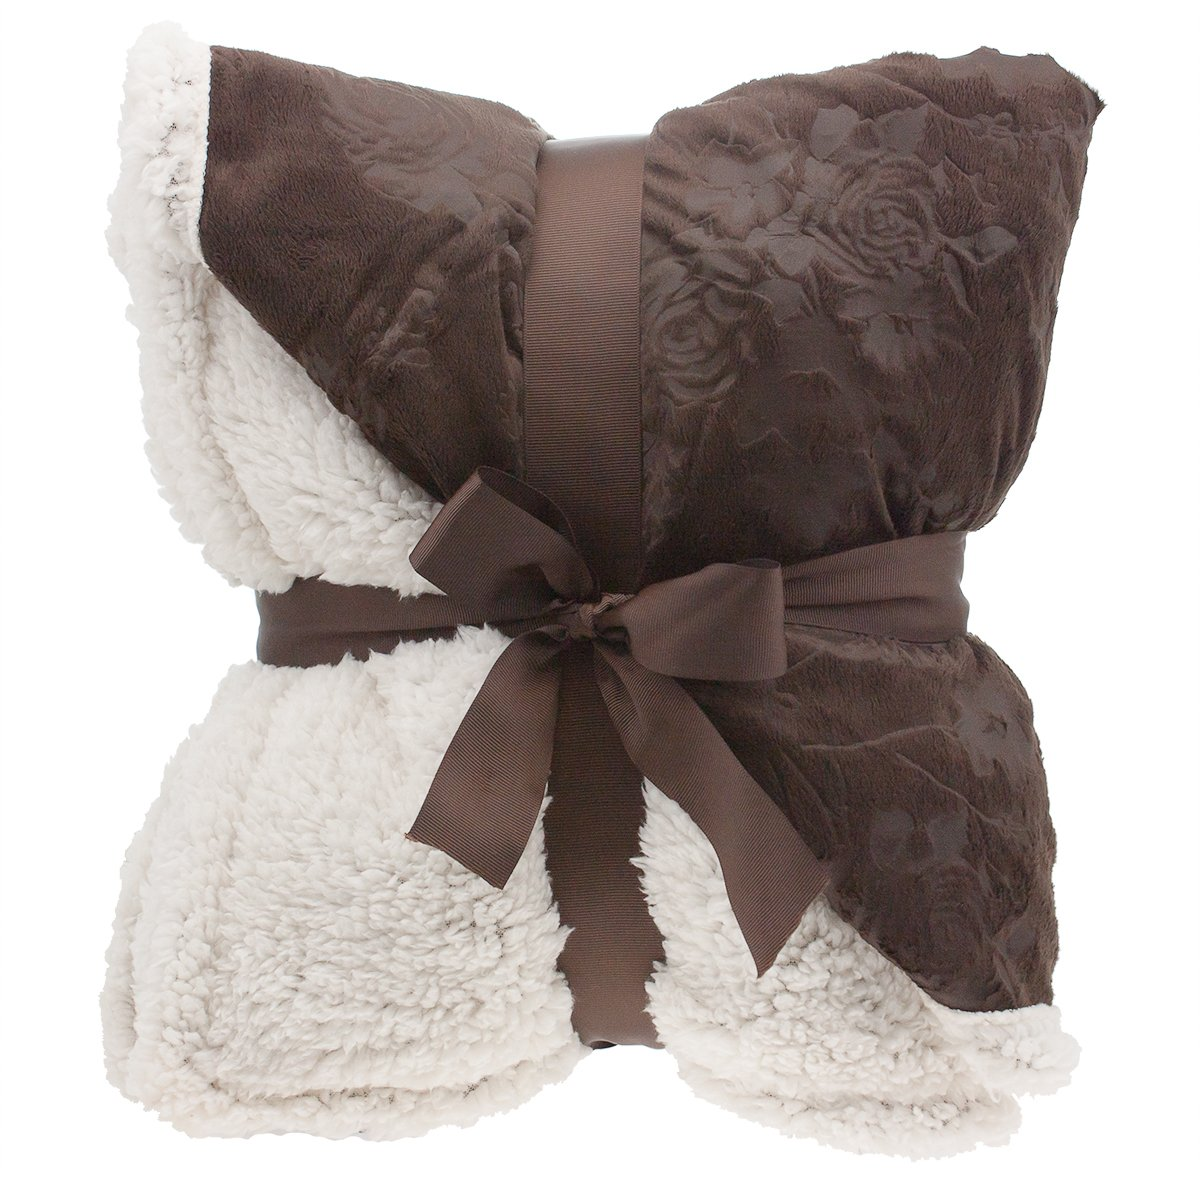 "Floral Embossed Sherpa Throw Blanket 50"" x 60"" Reversible Textured Fuzzy Soft Chocolate"